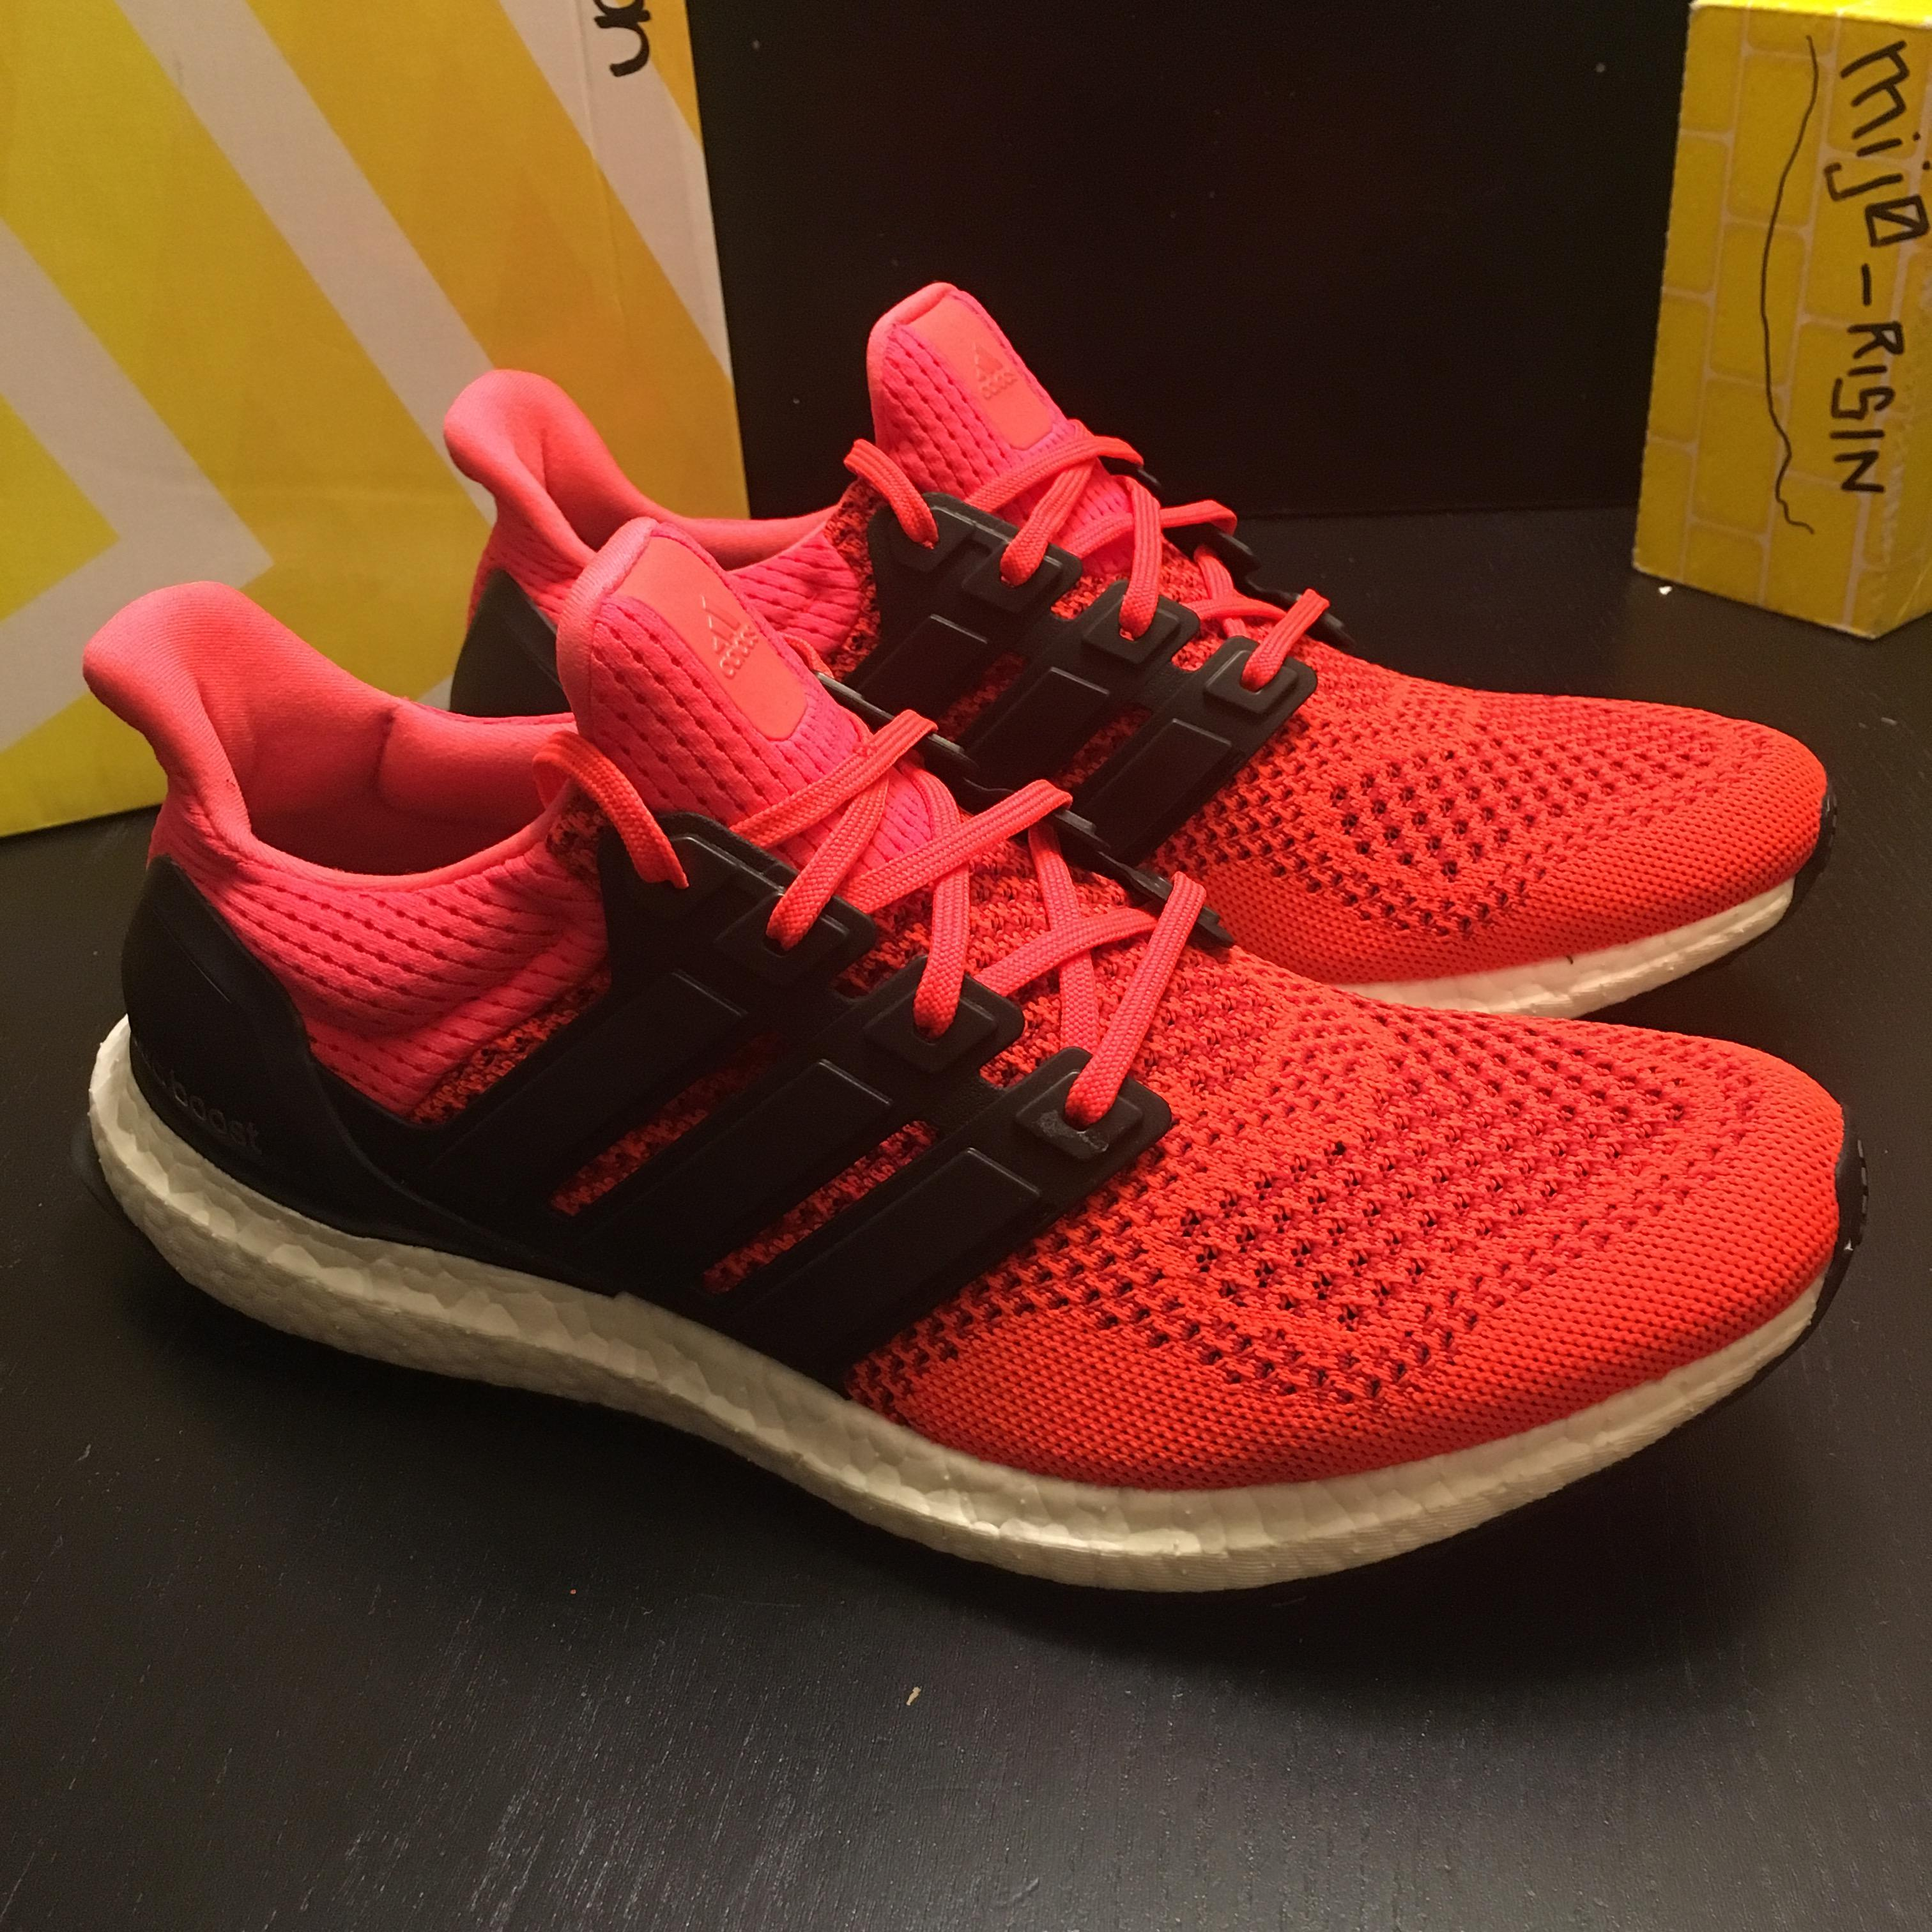 54cd71a497f19 Adidas PADS Adidas Ultra Boost Solar Red 1.0 B34050 Men Size 9 Size ...